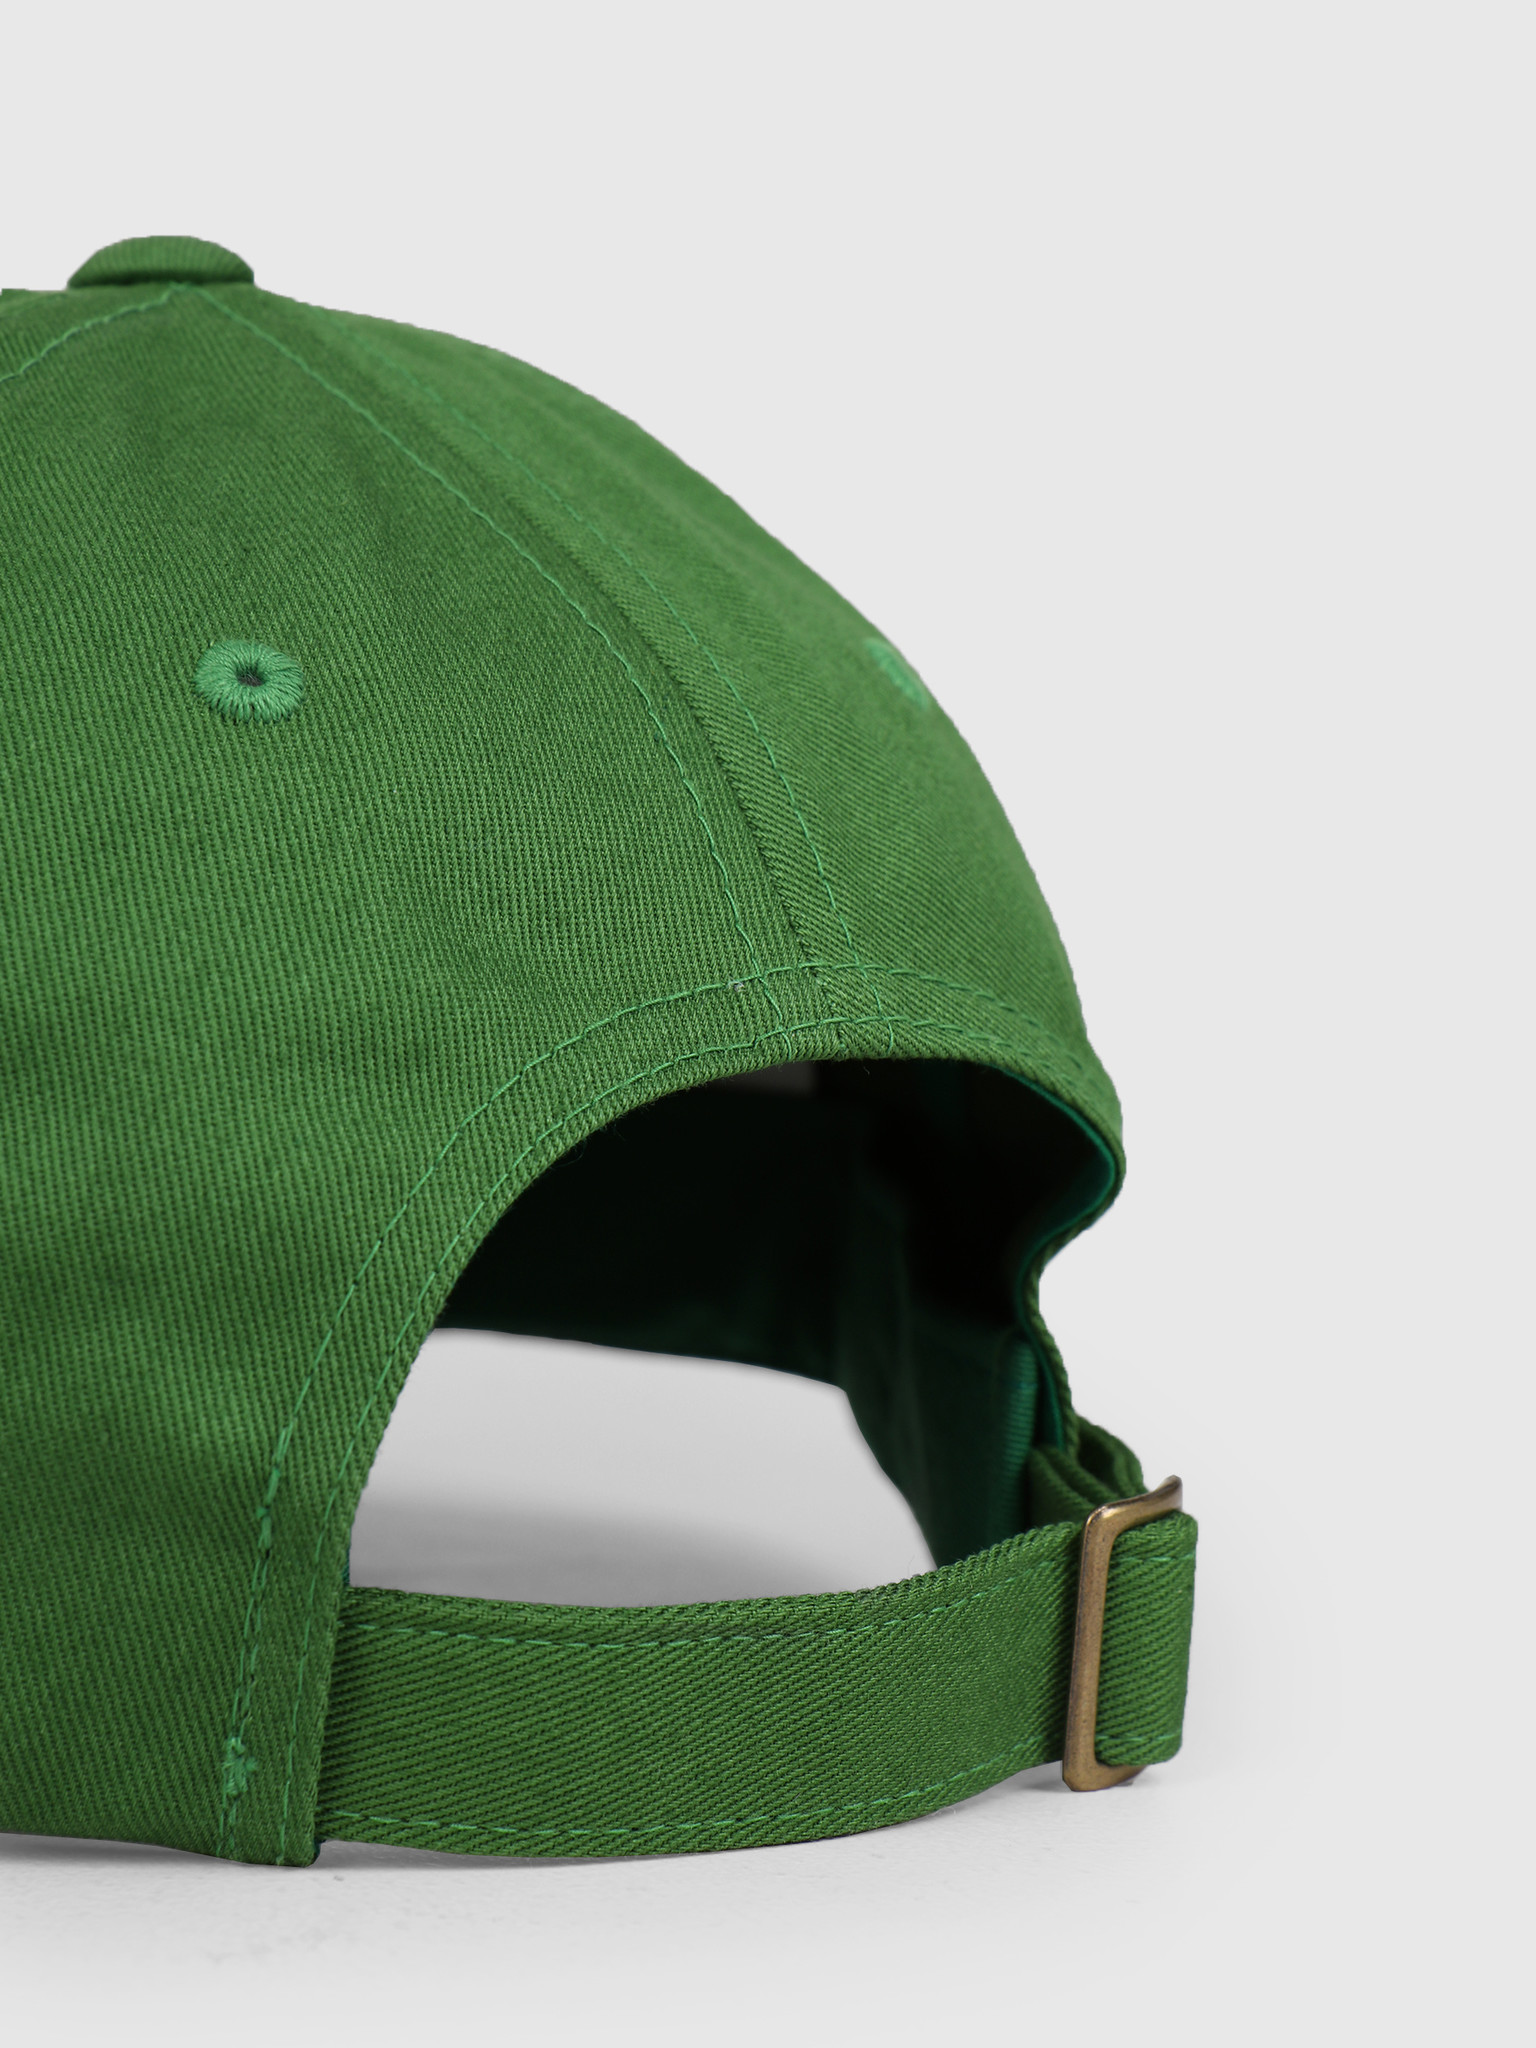 Stussy Stussy Sp19 Stock Low Pro Cap Green 0401